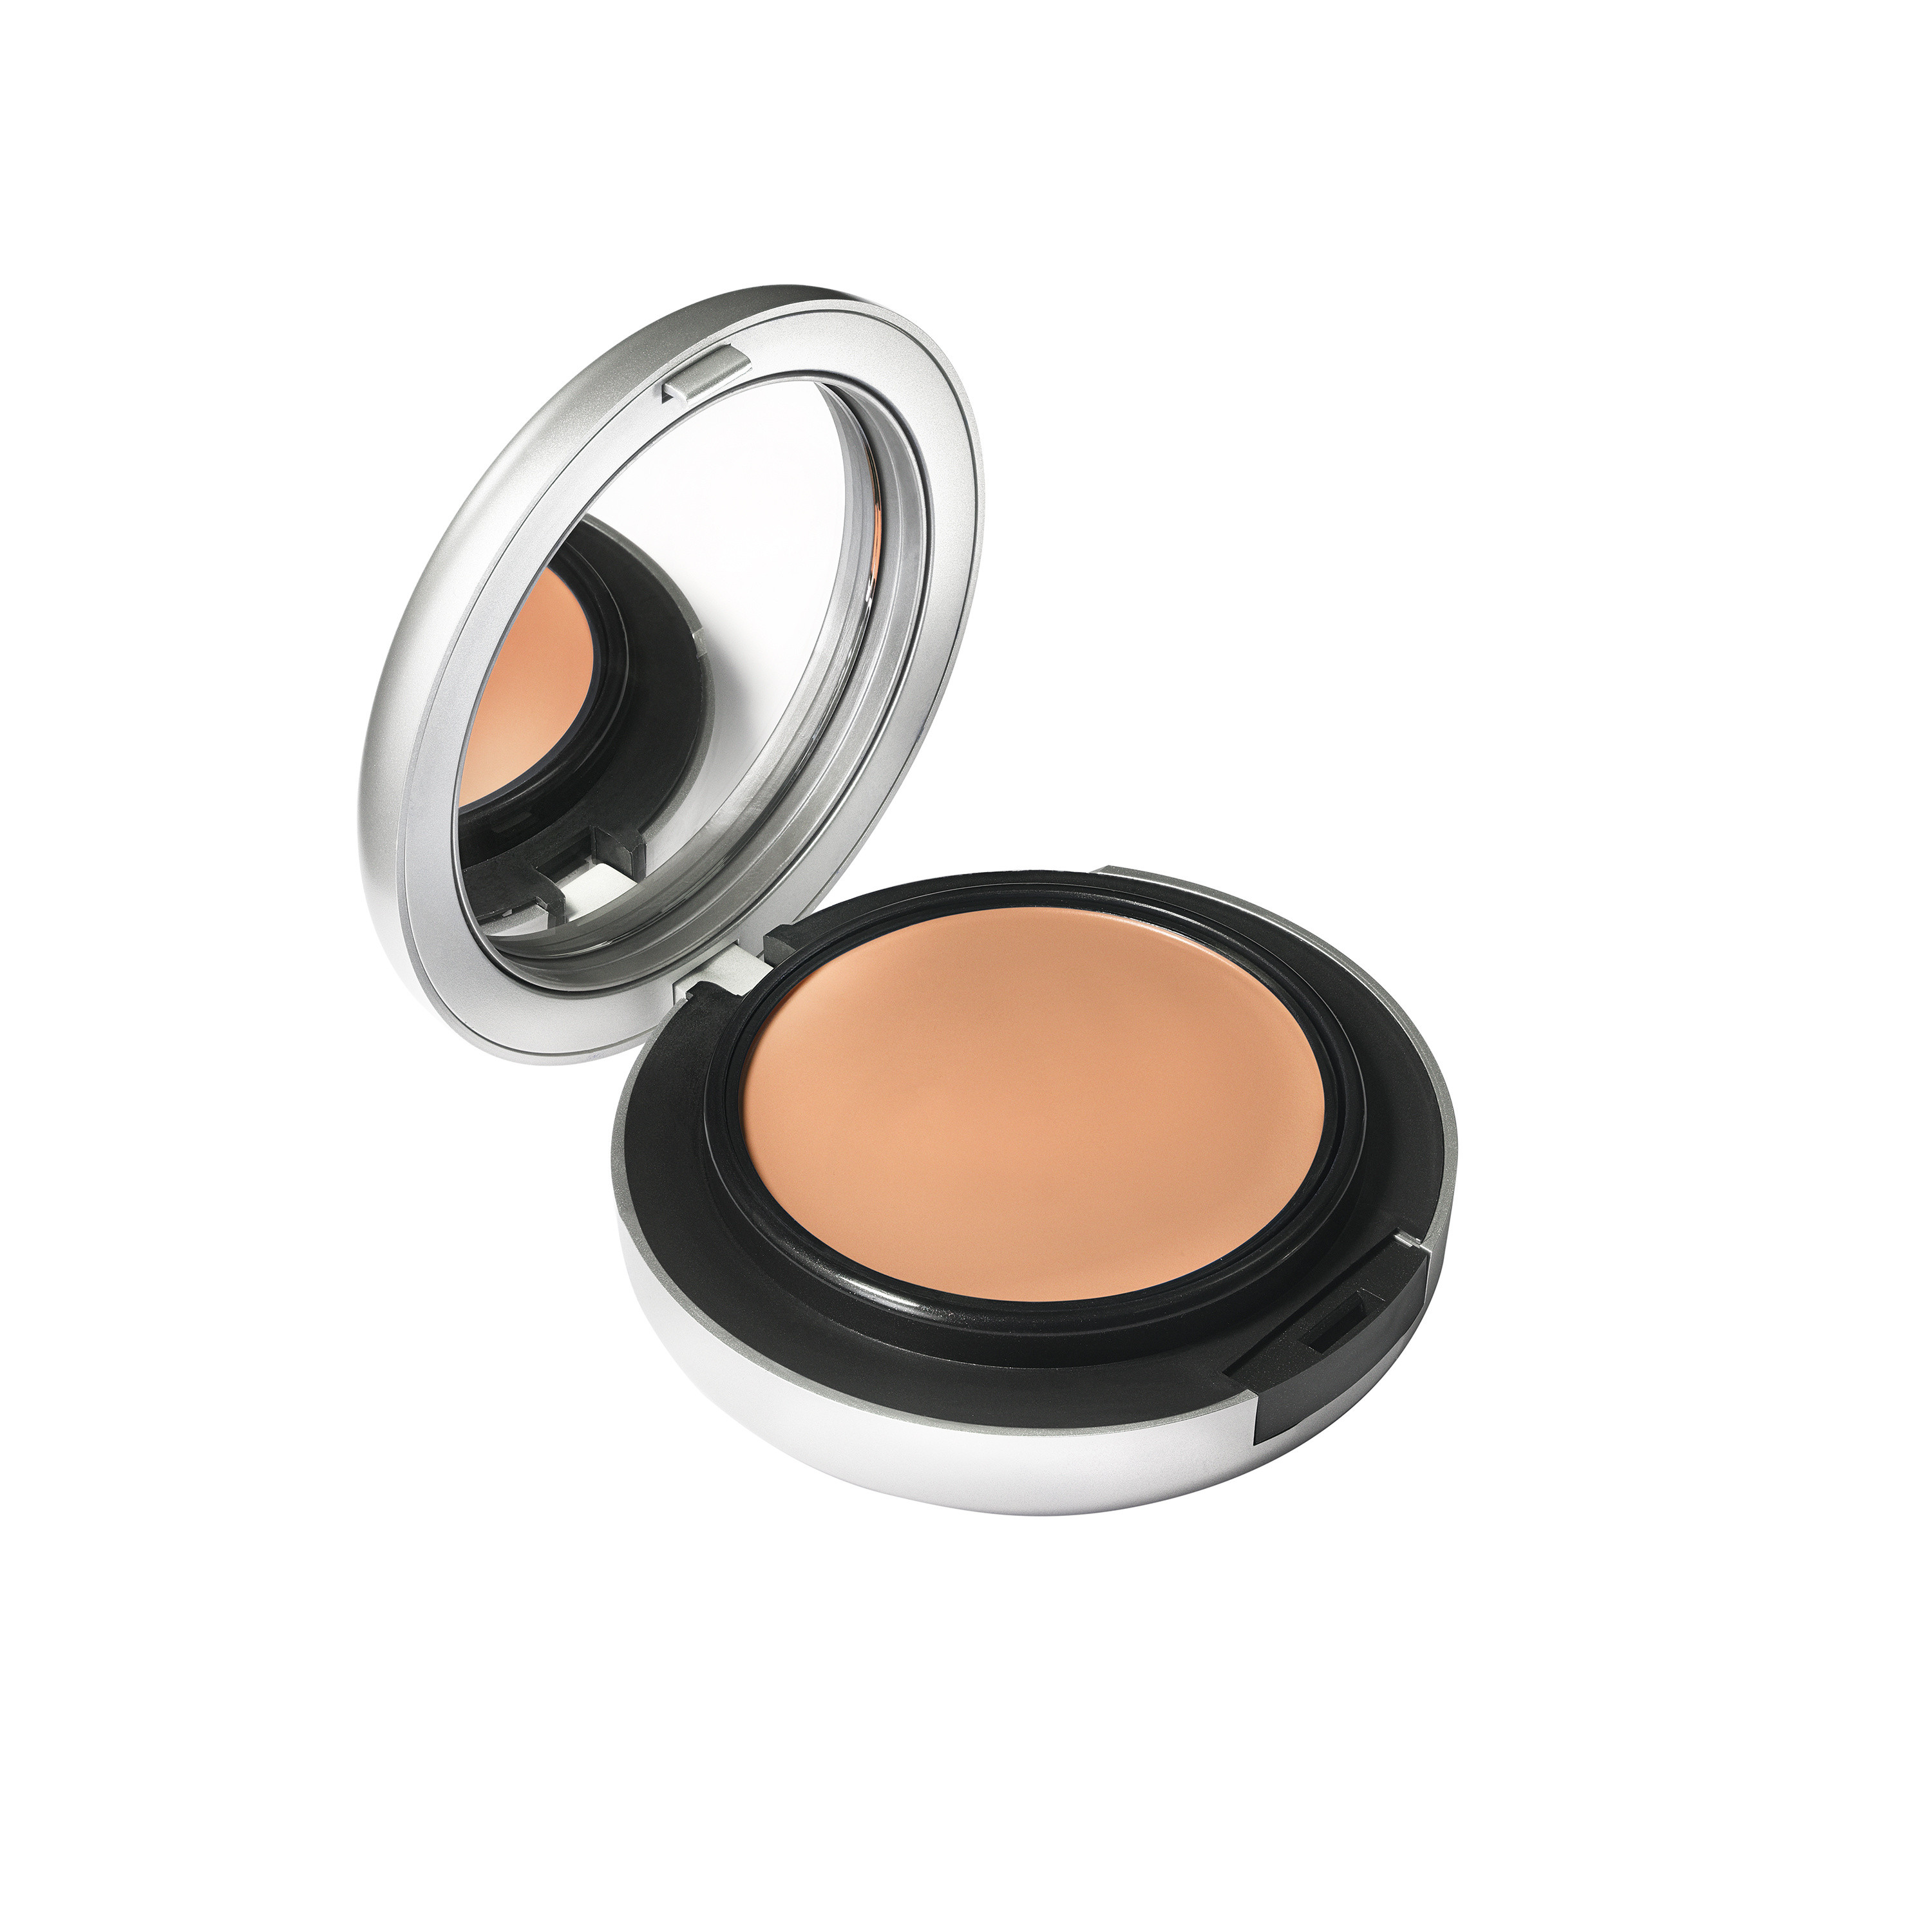 Studio Fix Tech Cream-To-Powder Fdt - NW20, NW20, large image number 1